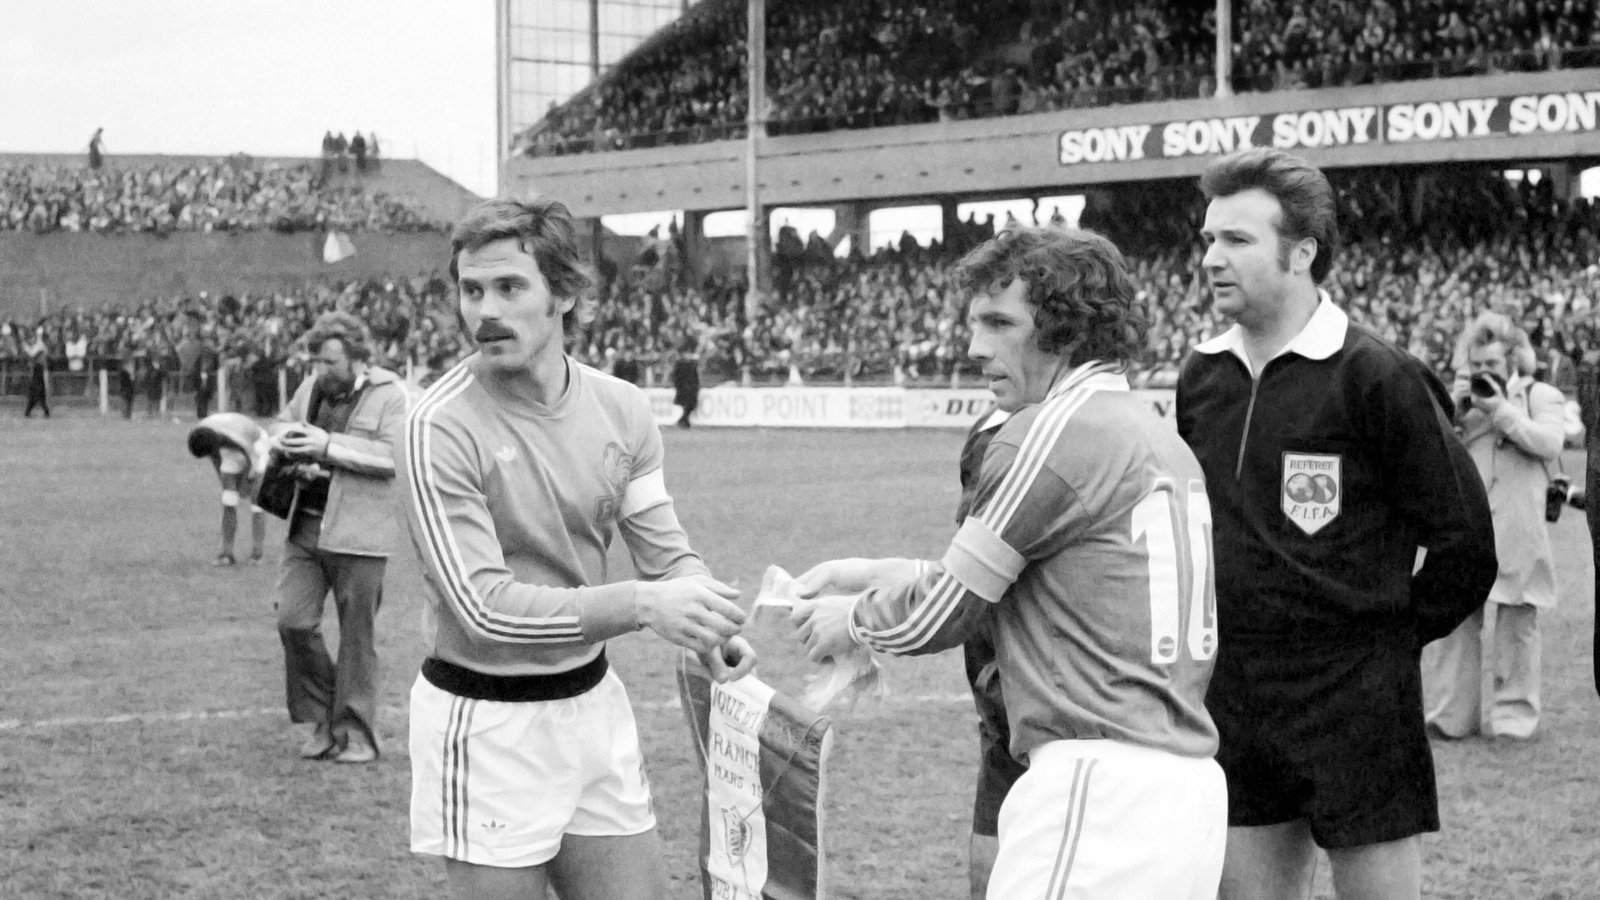 Image - John Giles captaining Ireland in the 1-0 victory over France in 1977